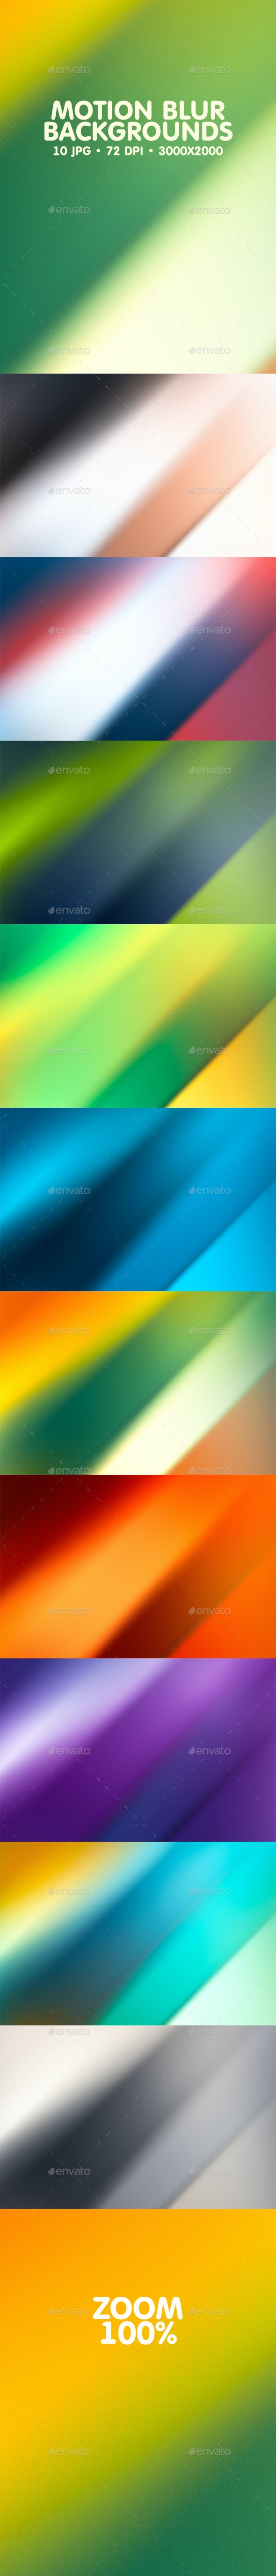 Motion Blur Backgrounds - Abstract Backgrounds